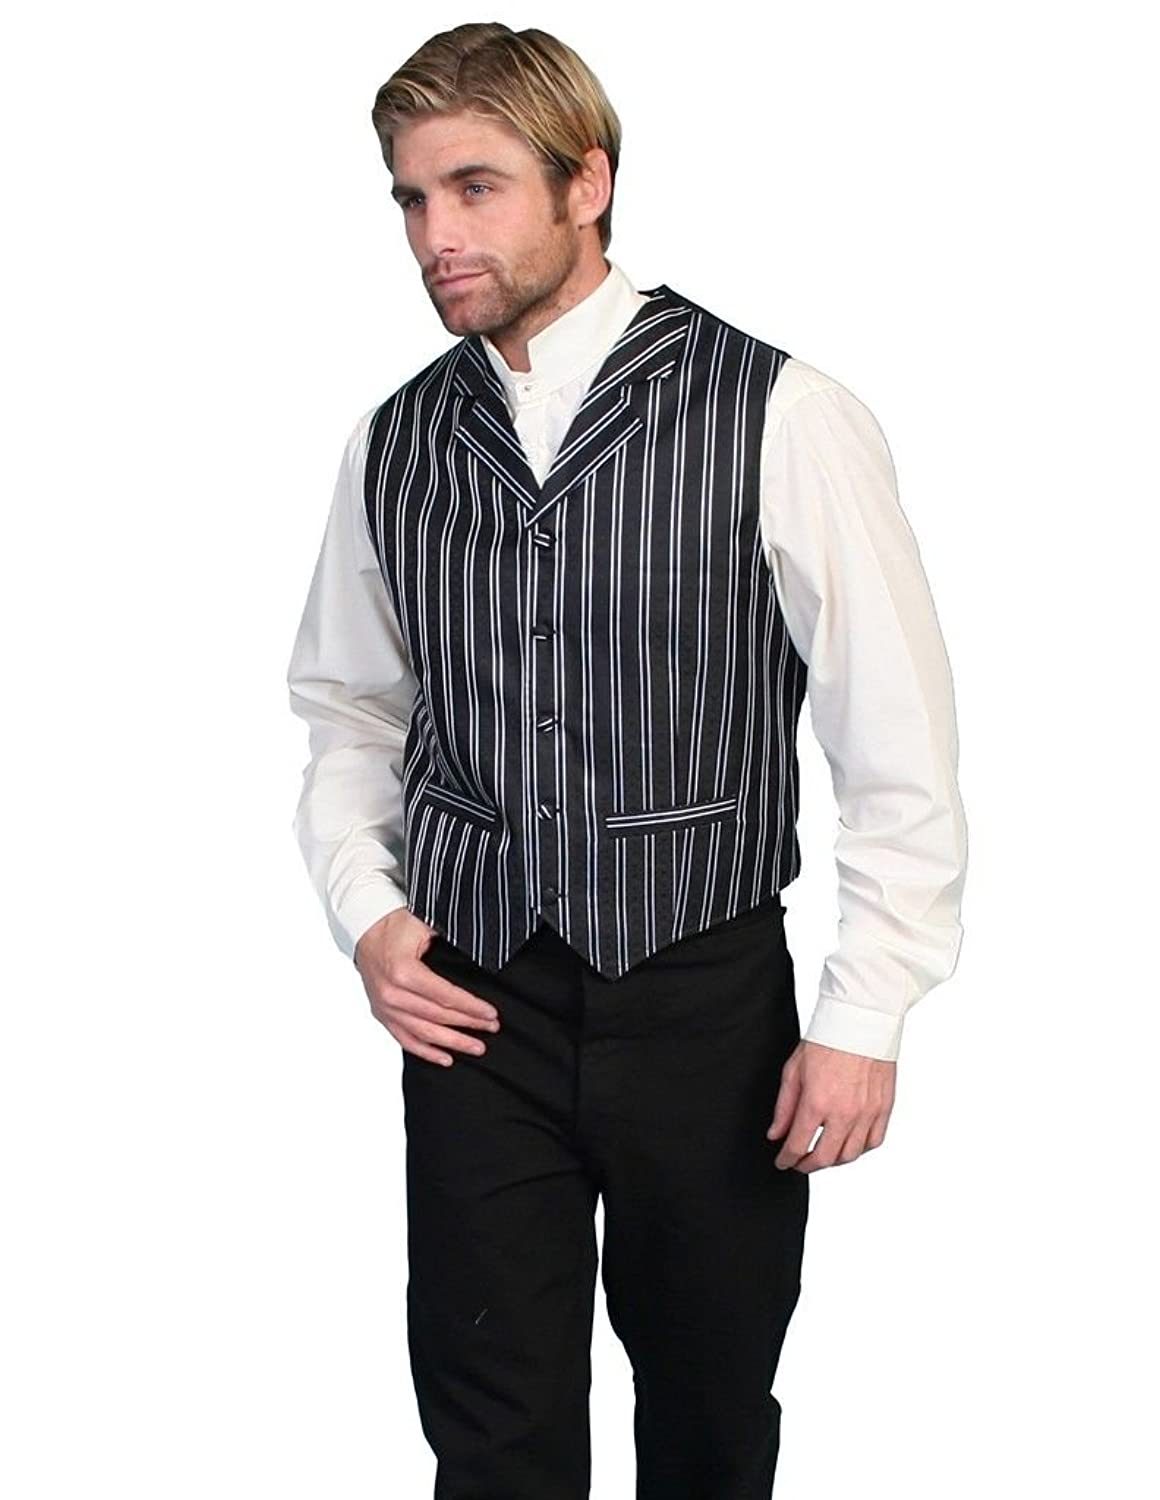 1900s Edwardian Men's Suits and Coats Rangewear By Scully Mens Rangewear Double Pinstripe Vest Big And Tall - Rw169x Blk $55.05 AT vintagedancer.com